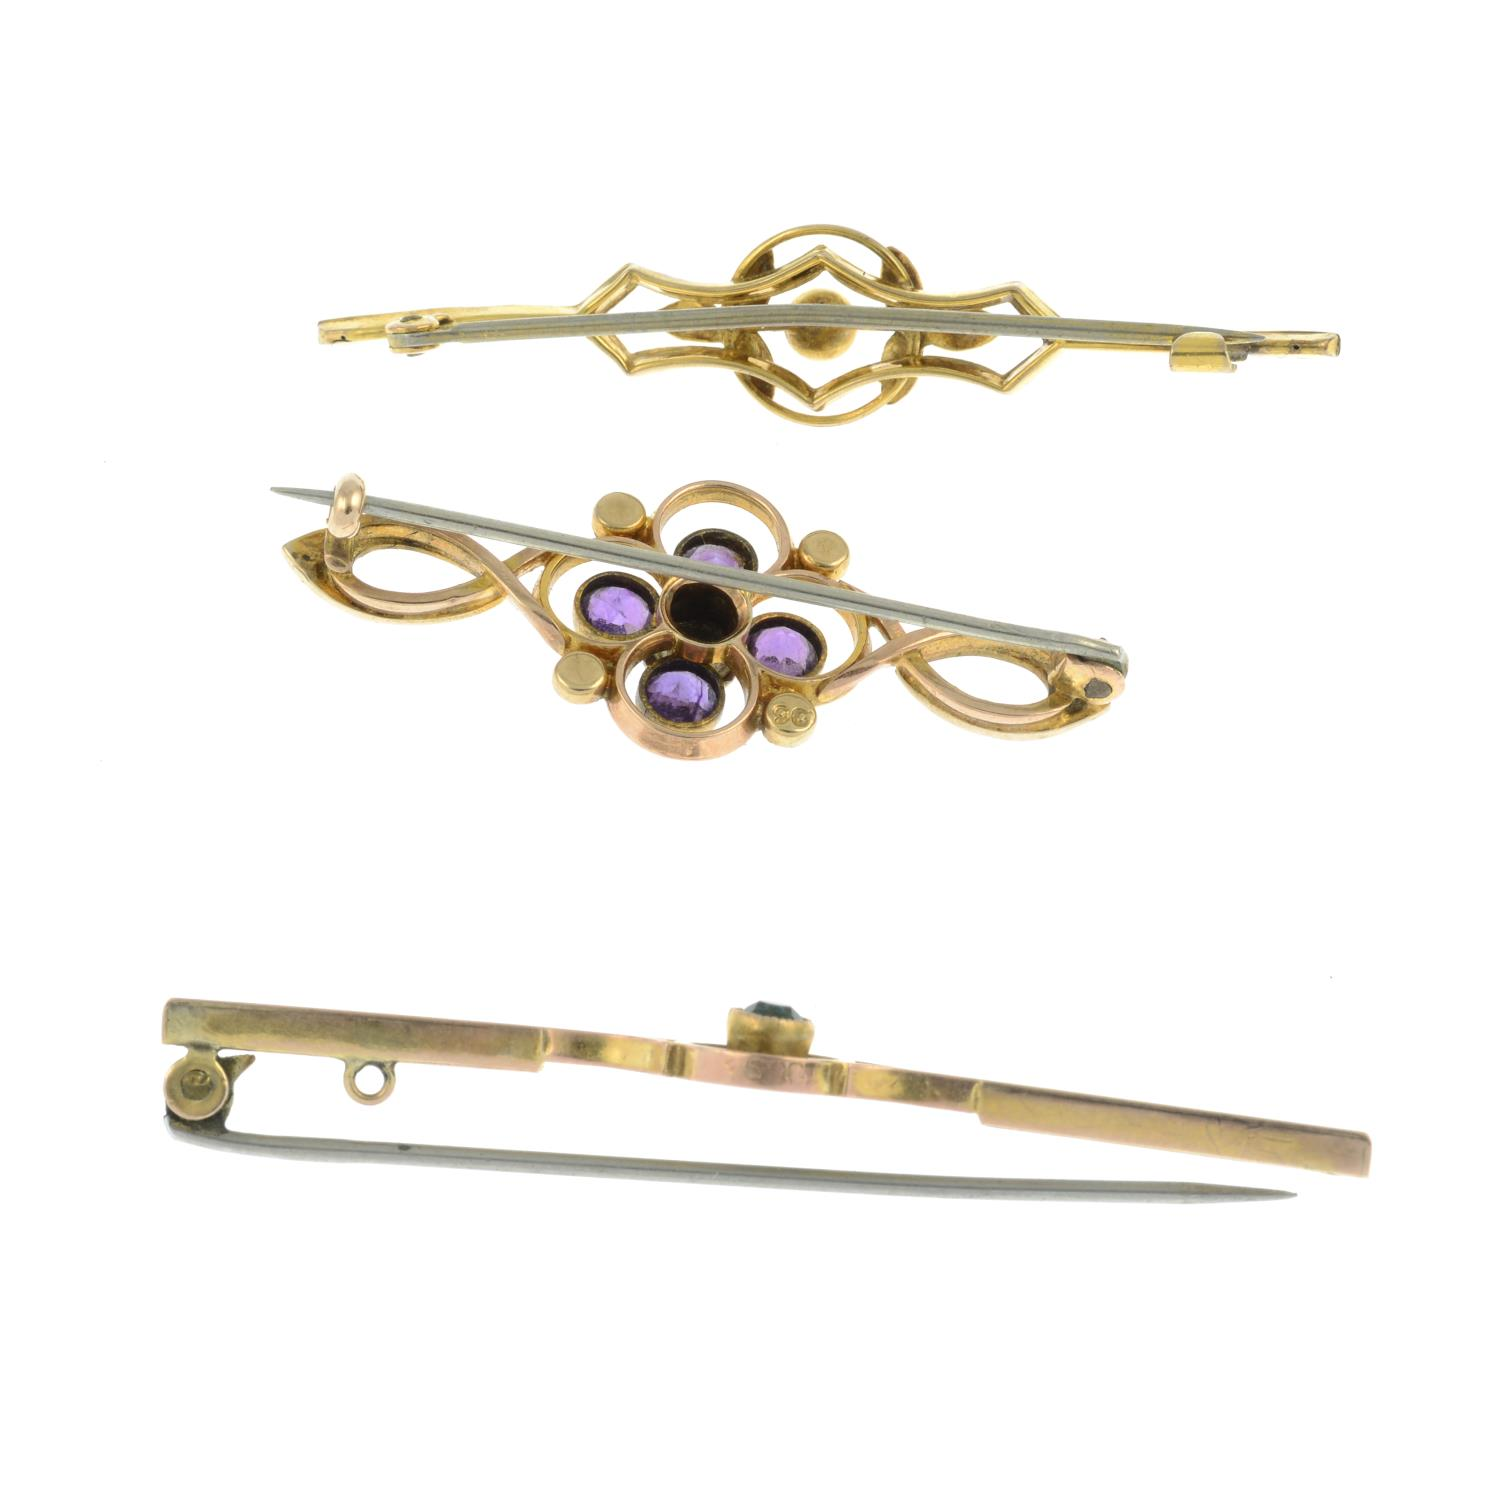 An amethyst and seed pearl brooch, - Image 2 of 2